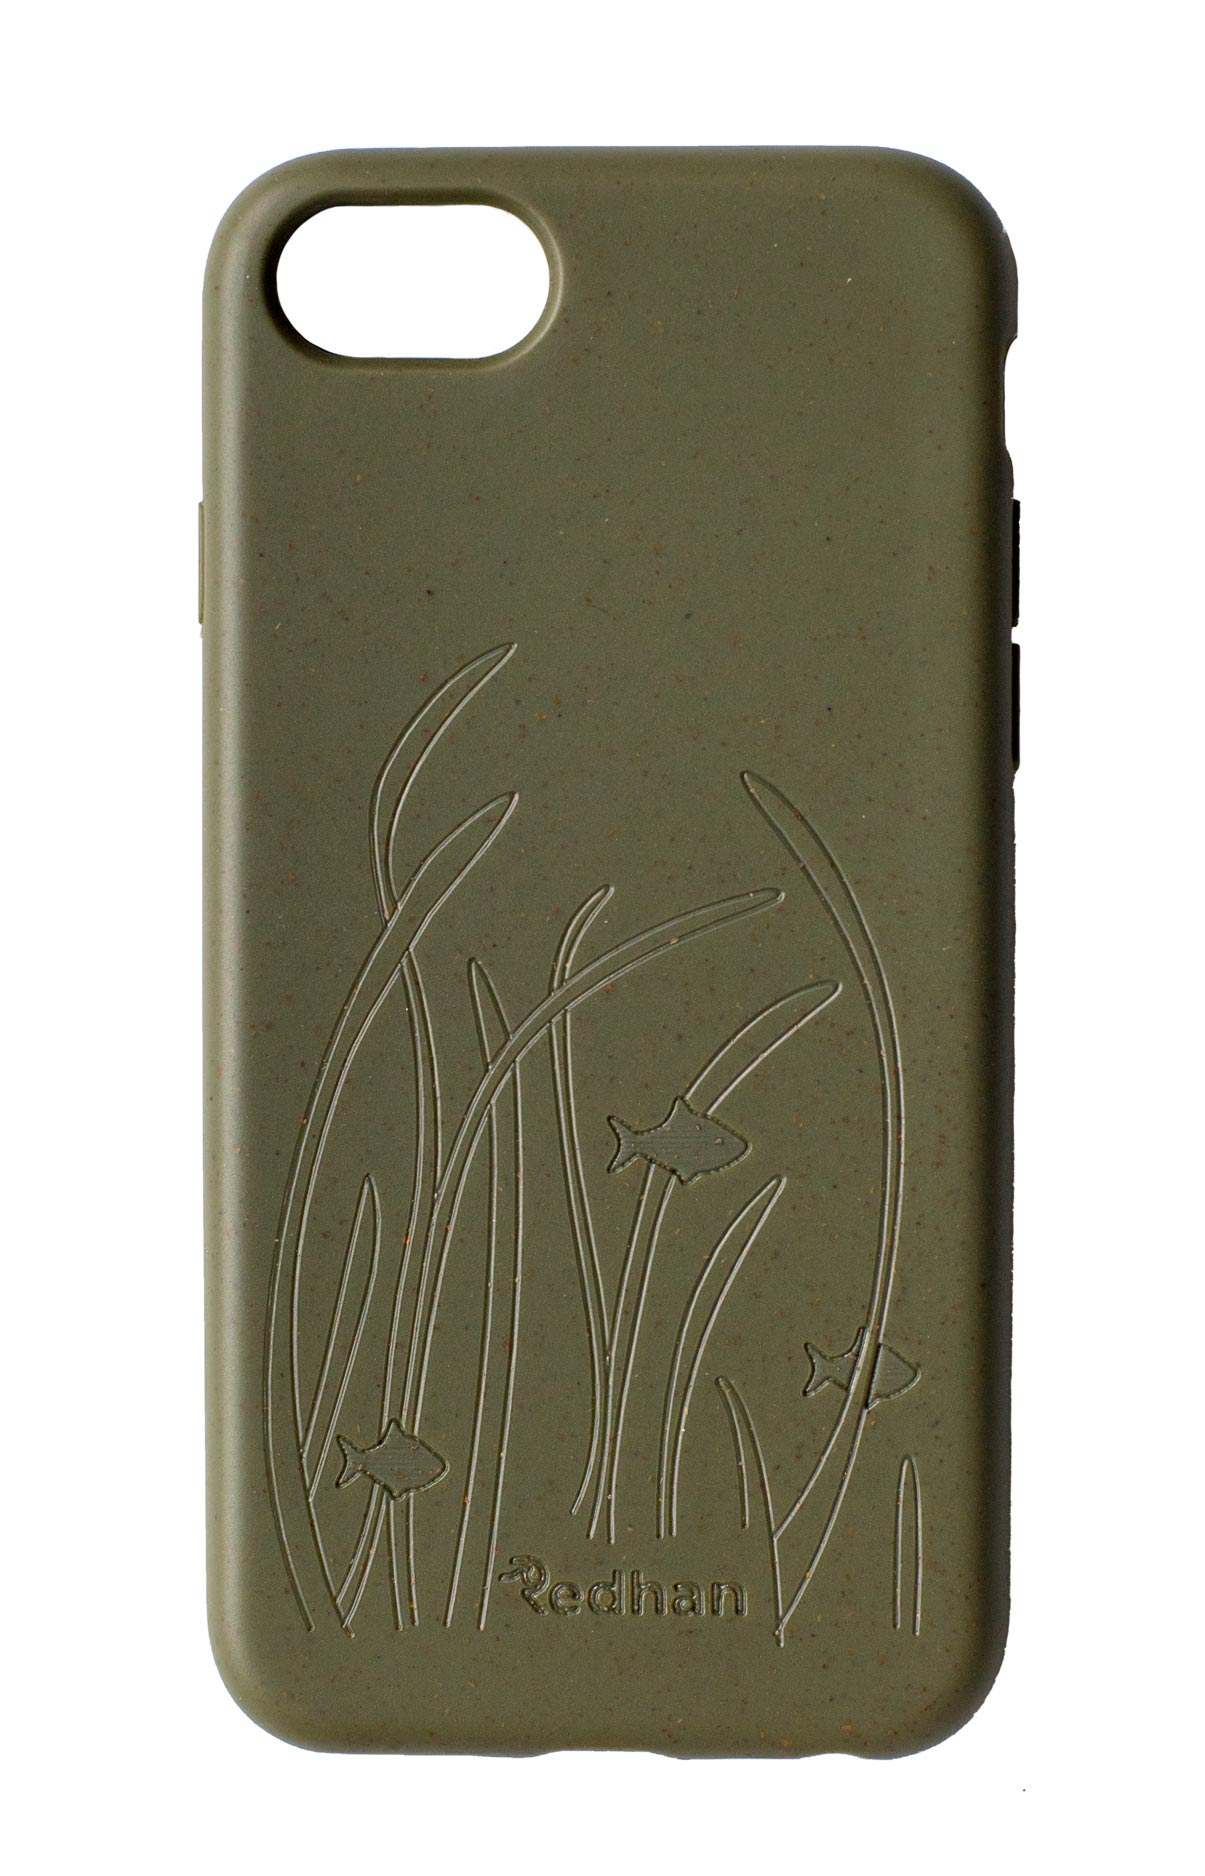 Eco Friendly iPhone  6/6S/7/8/SE (2nd Gen) Phone Case - Seagrass in Olive Green